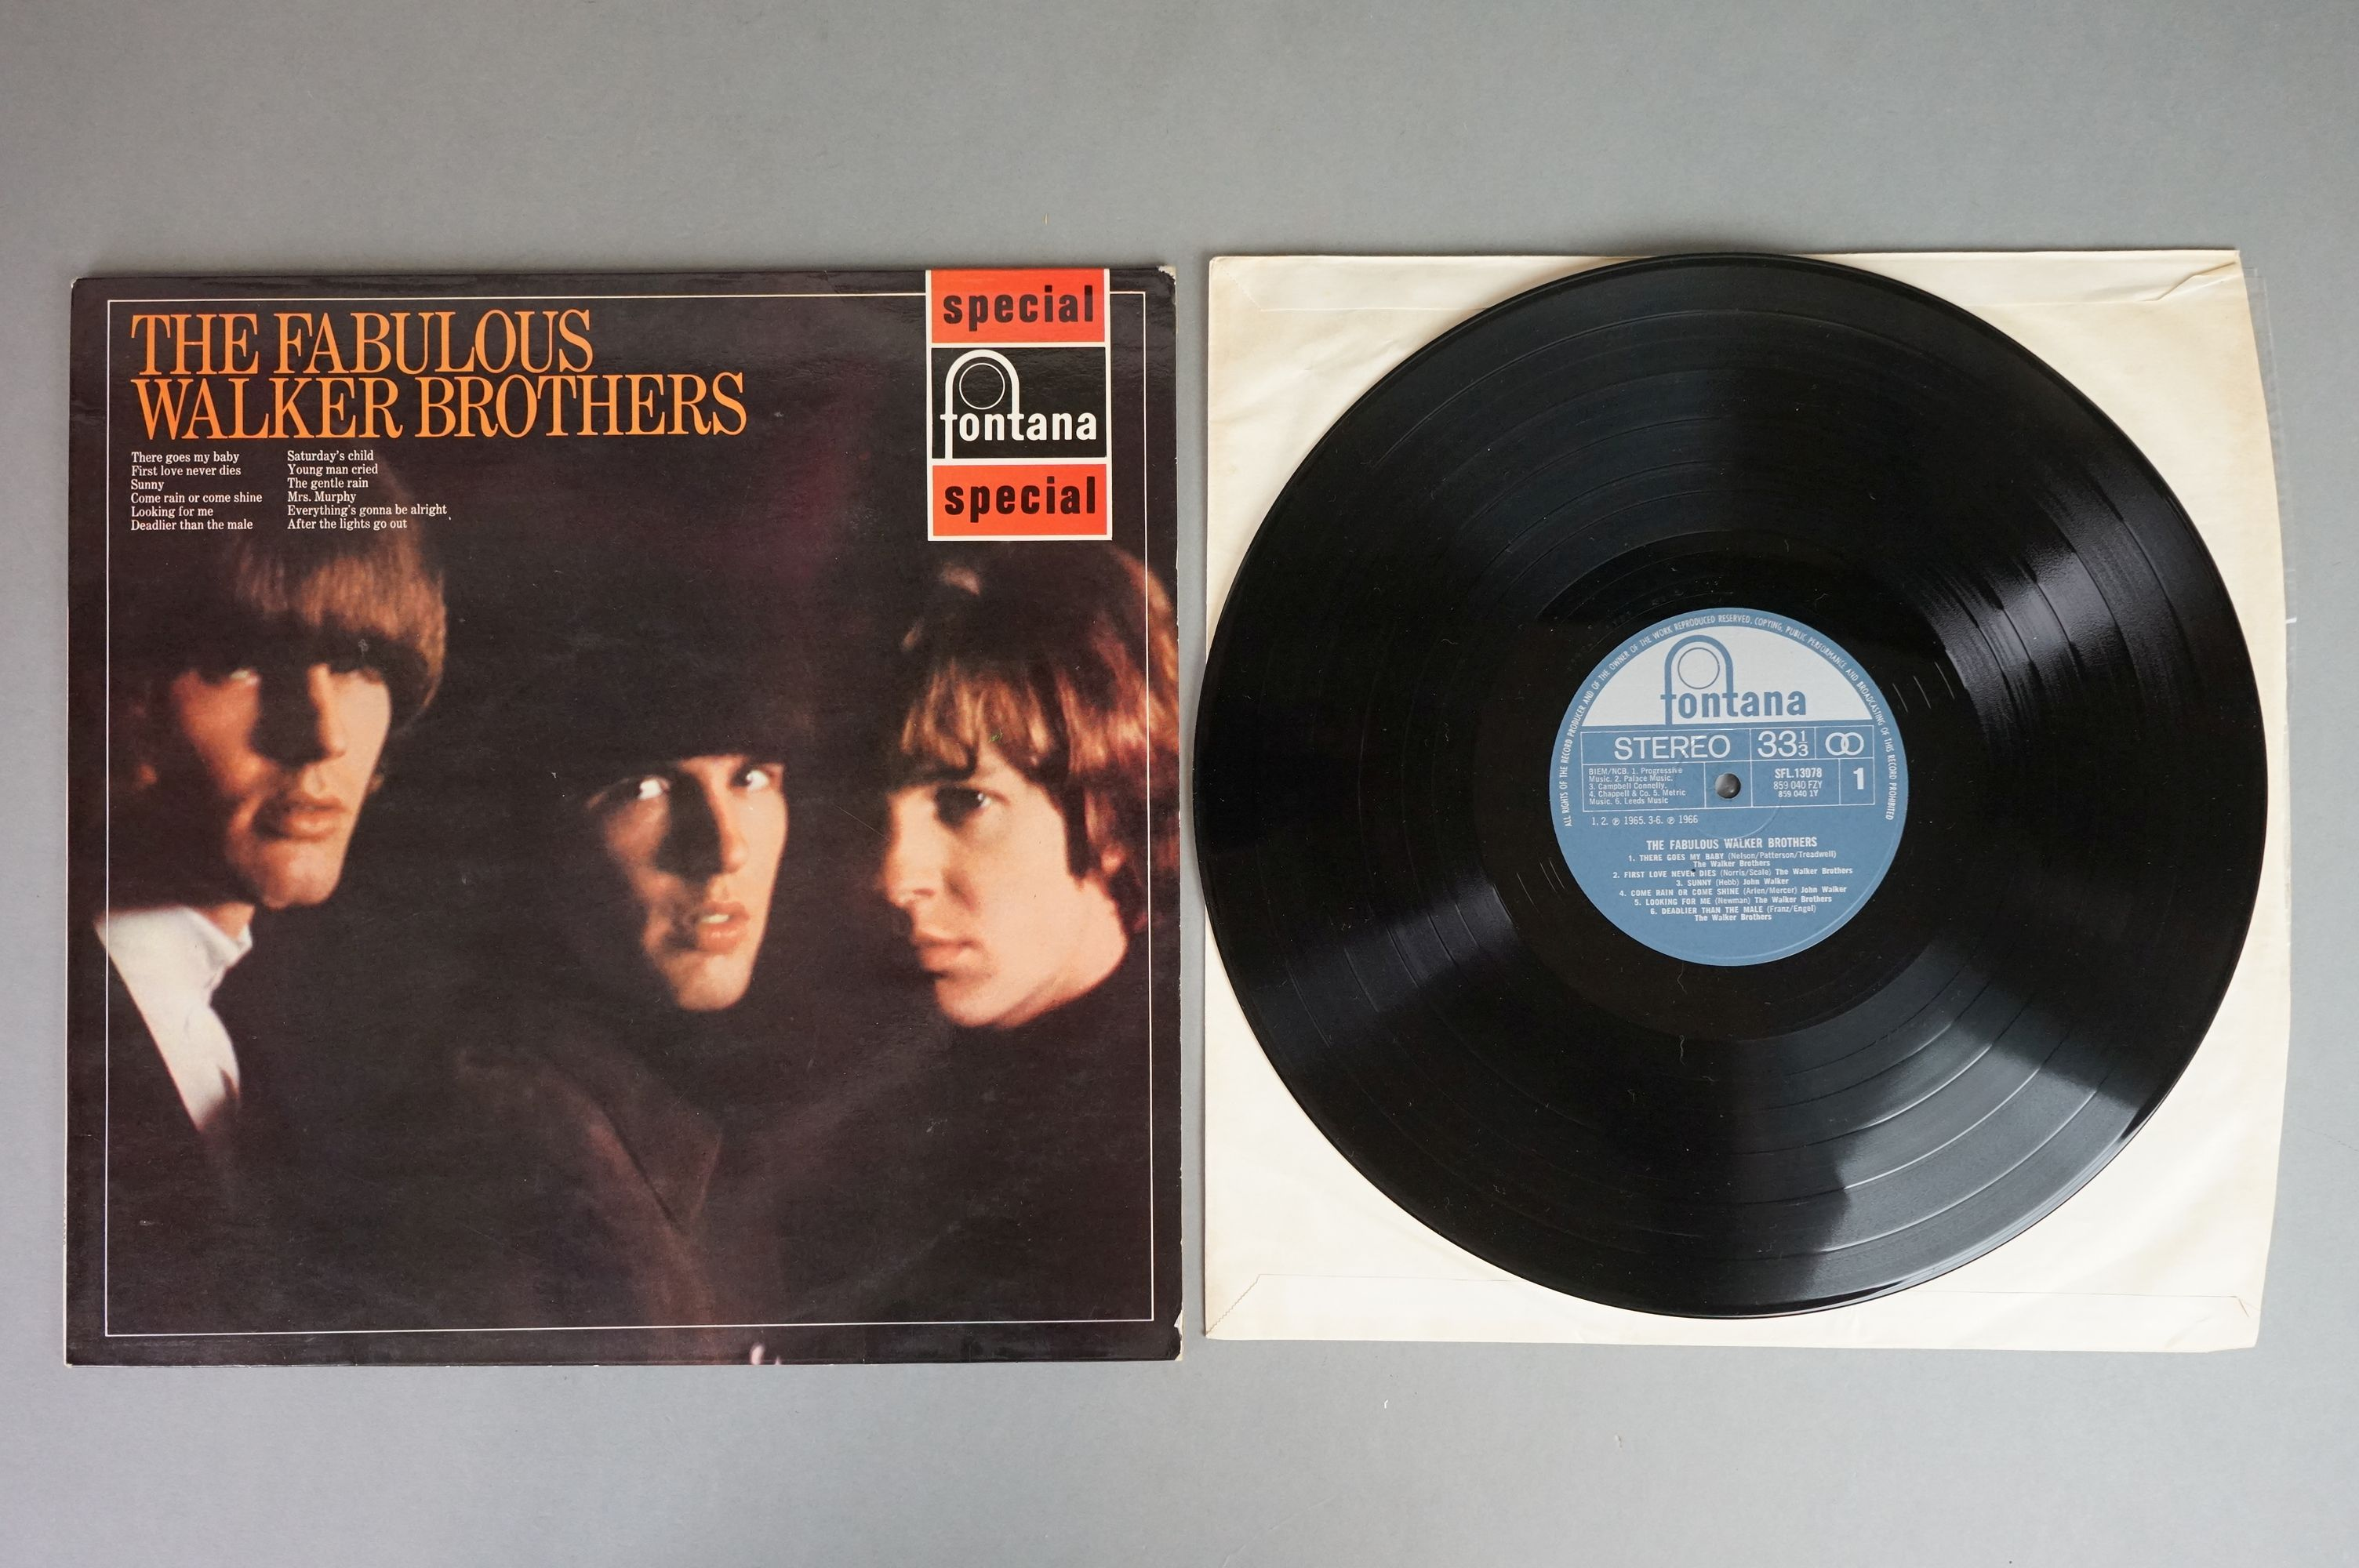 Vinyl - Five Walker Brothers vinyl LP's to include Scott (Phillips Records BL 7816), The Fabulous - Image 3 of 10